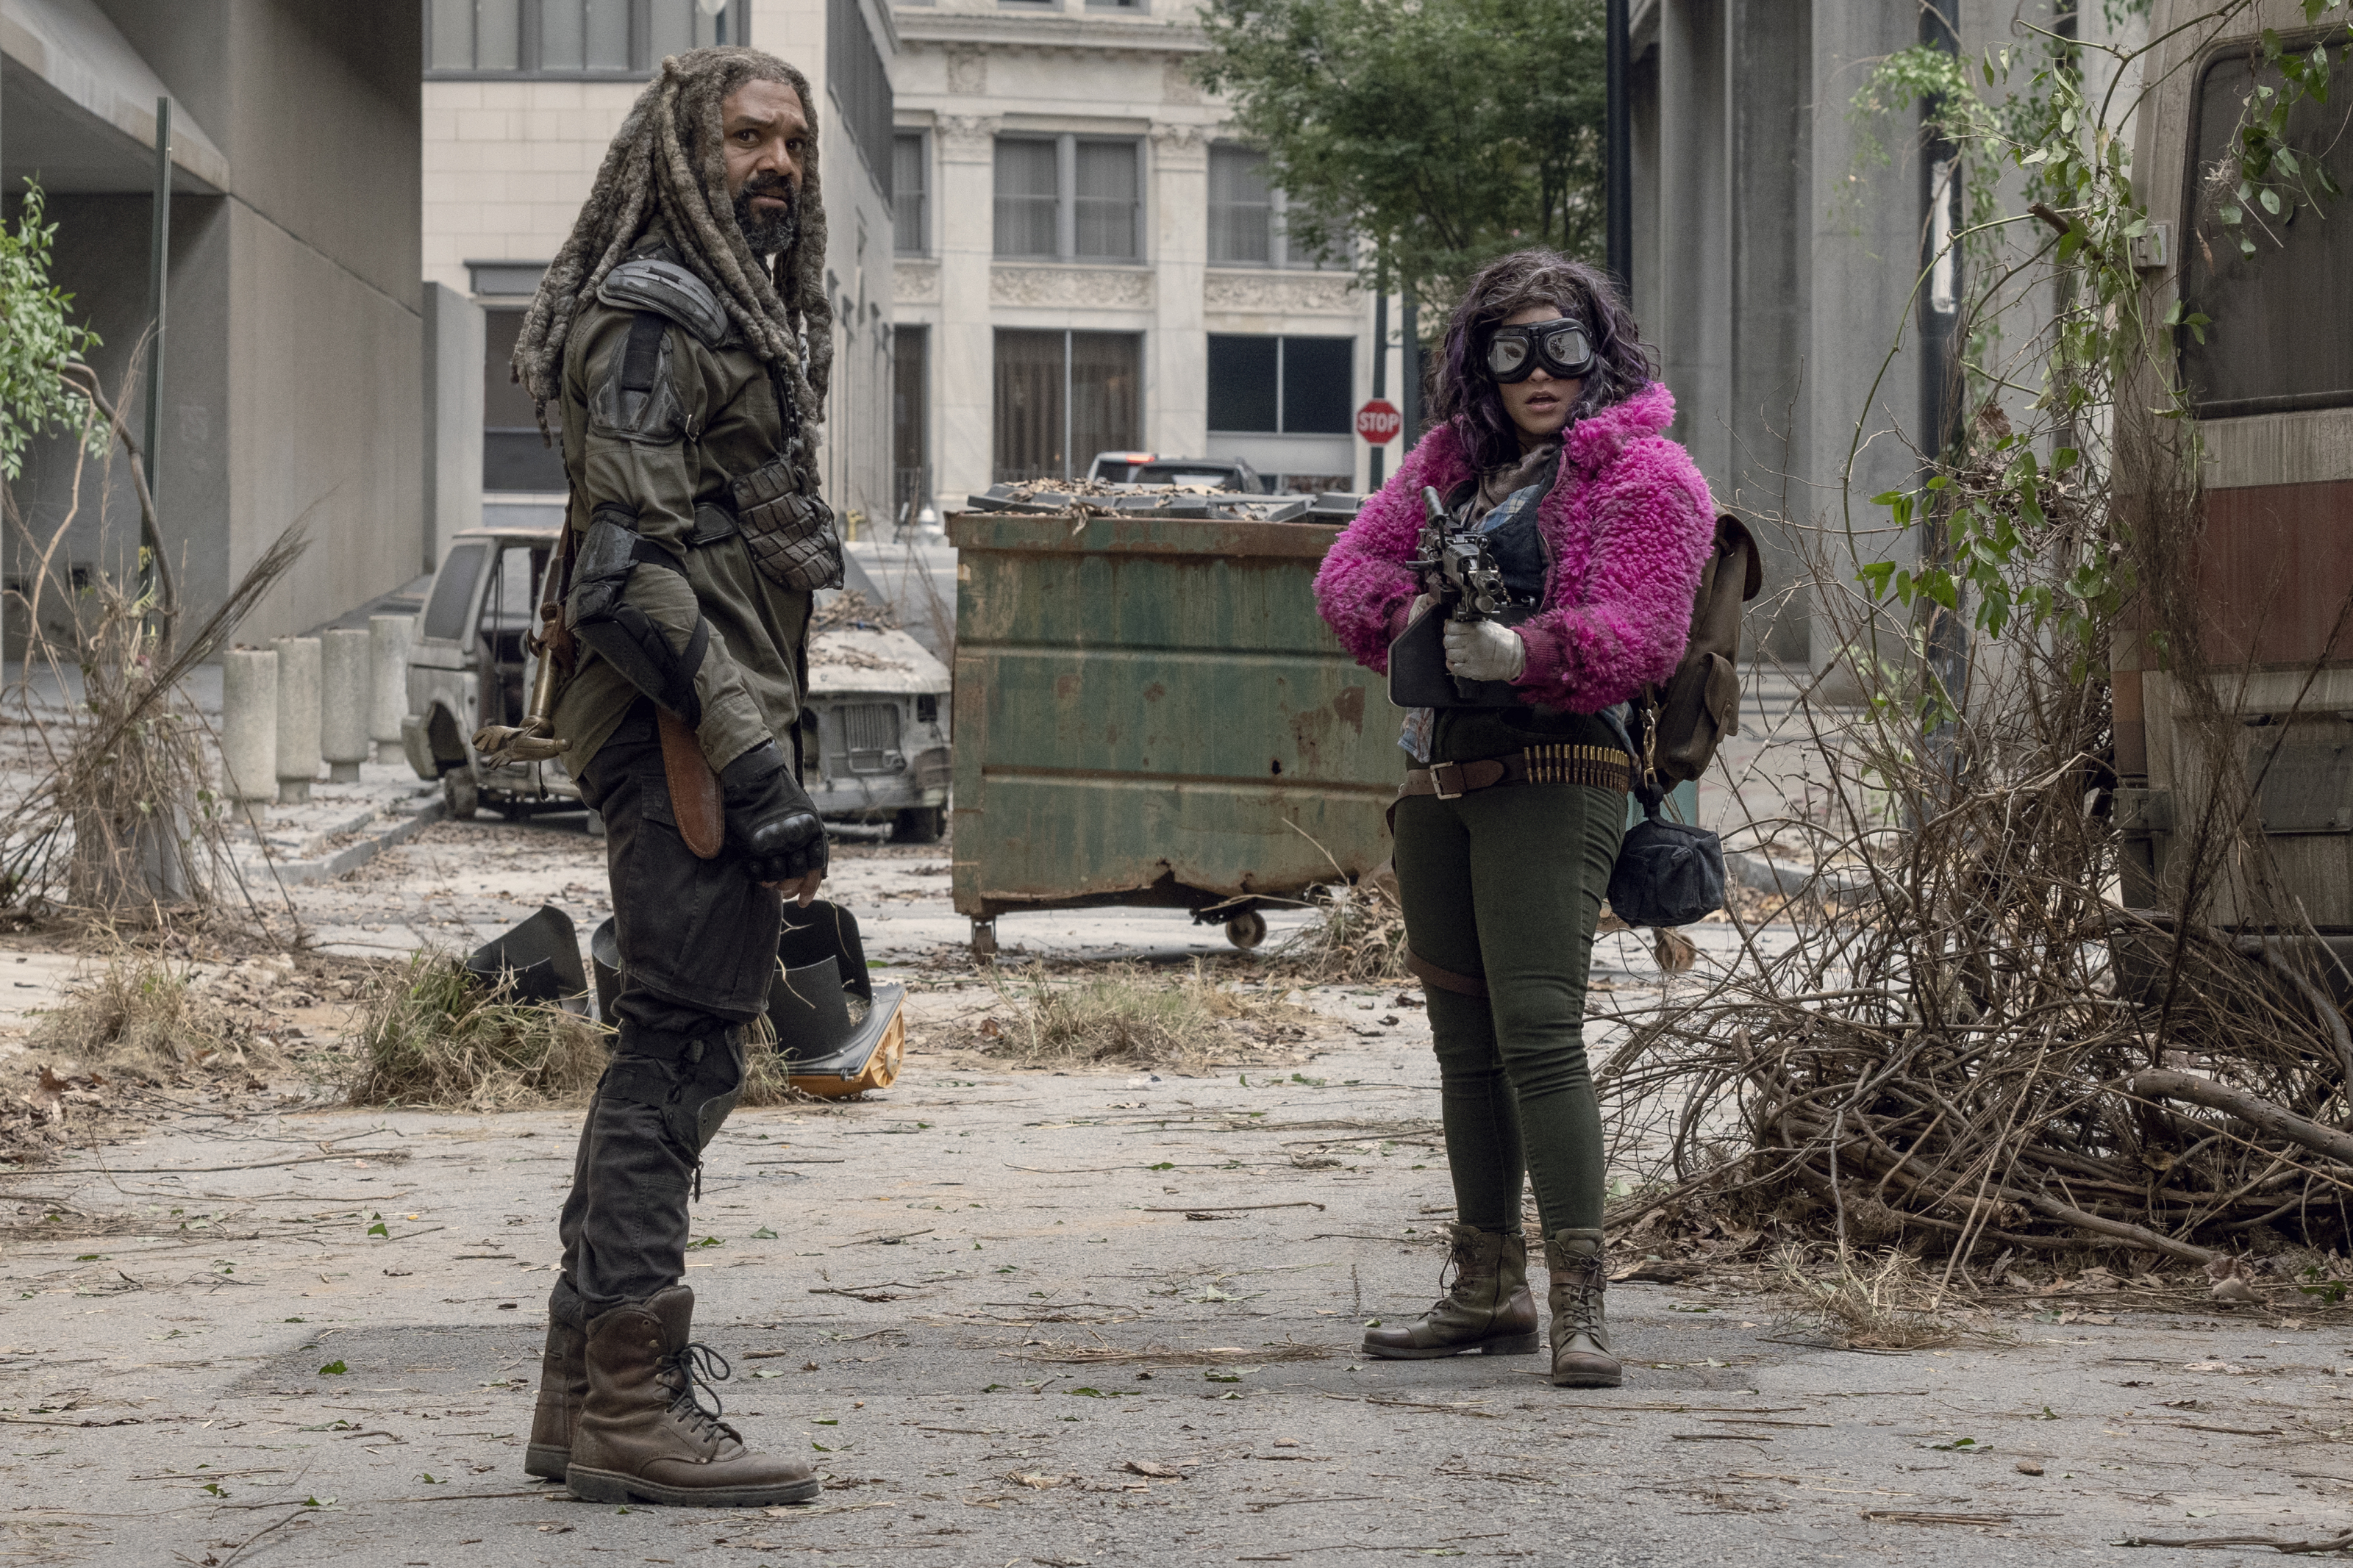 Learn all about Princess, the quirky new character on The Walking Dead